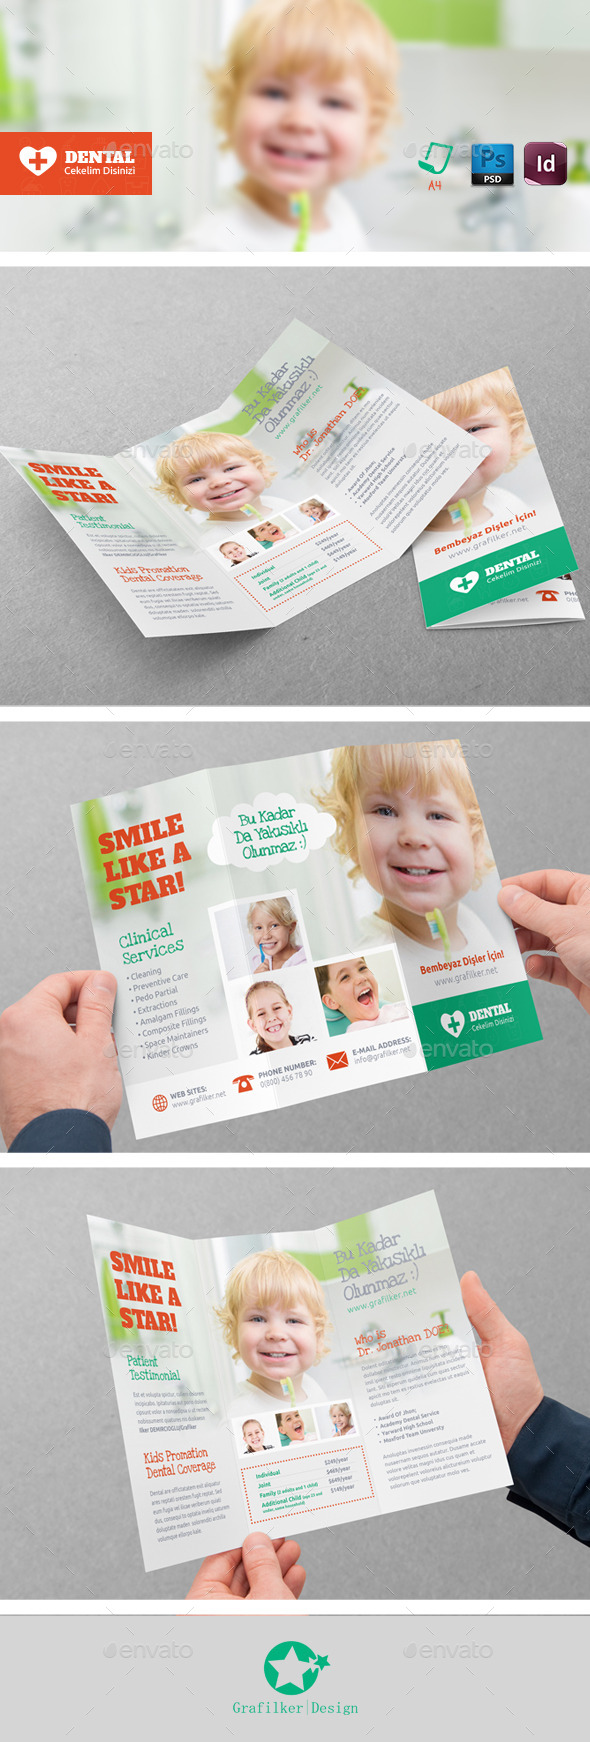 GraphicRiver Kids Dental Tri-Fold Templates 9028473